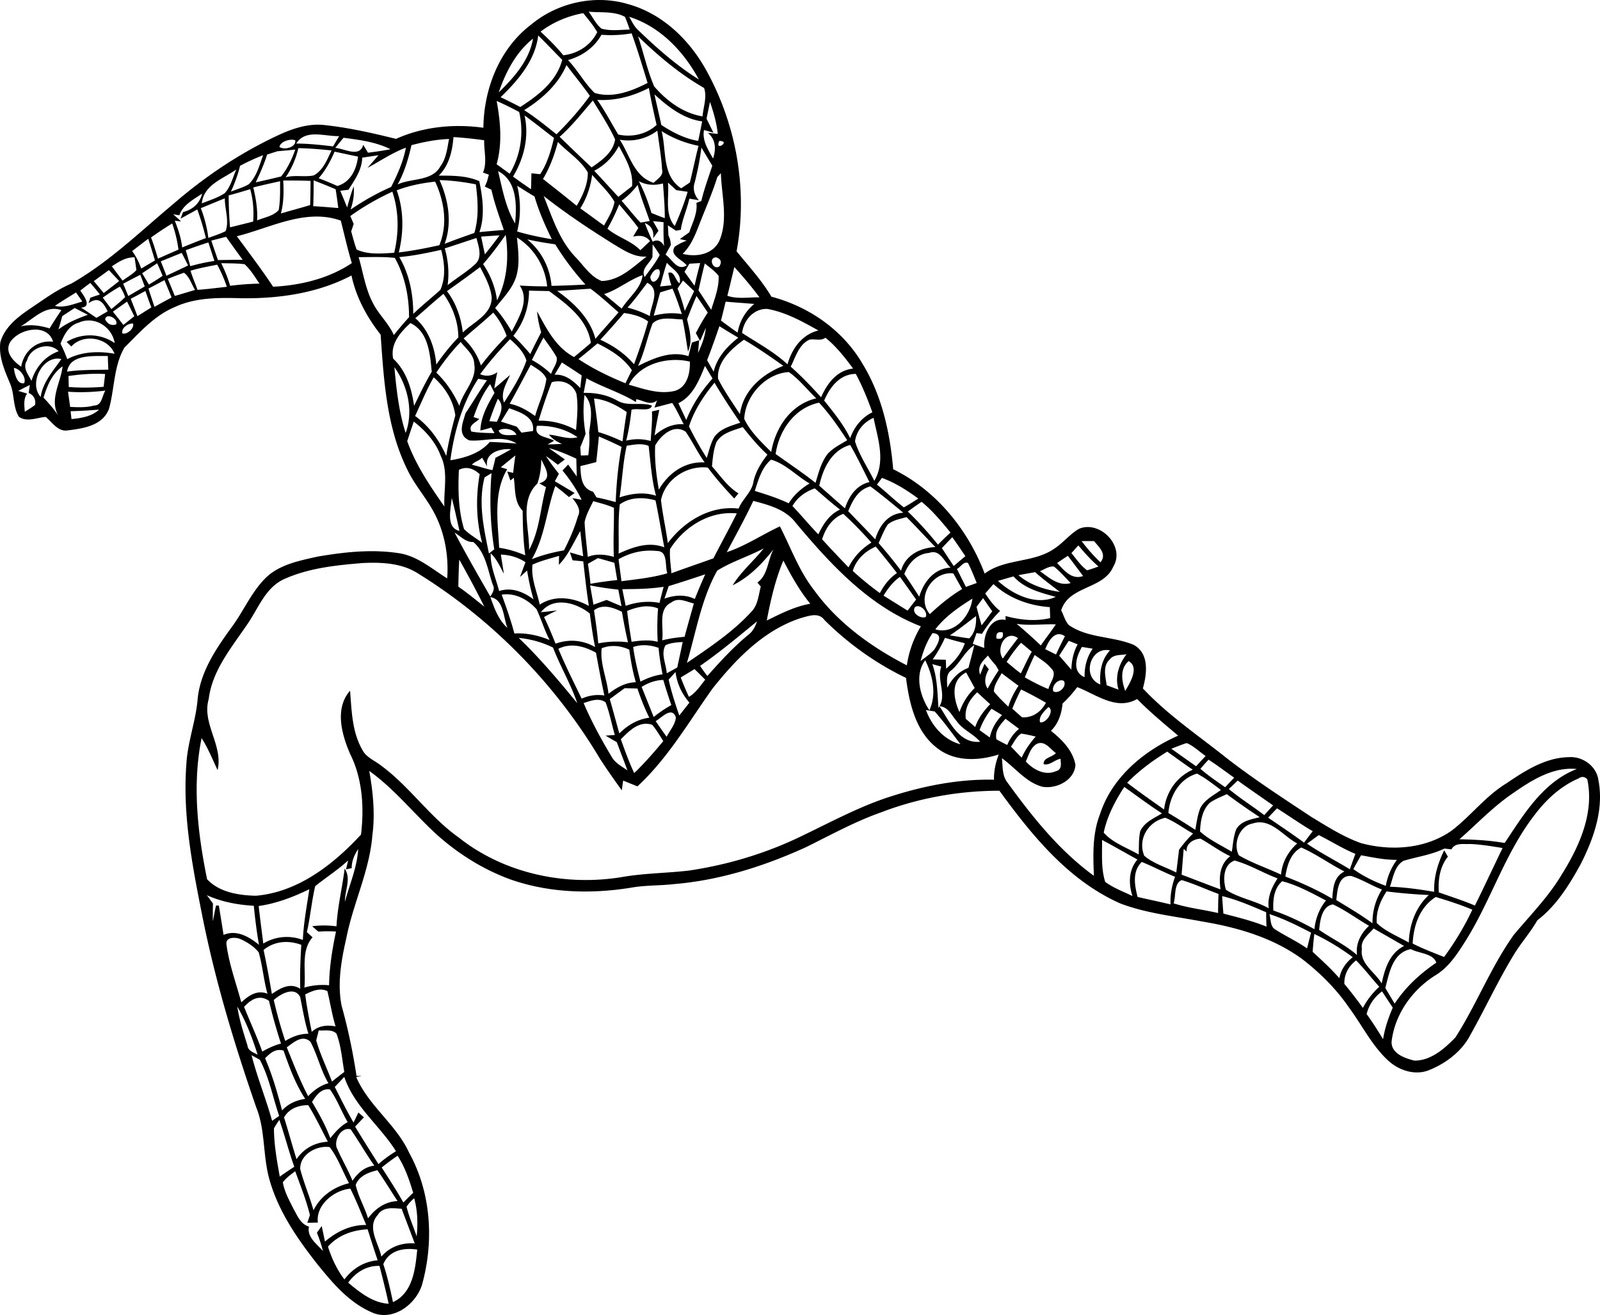 spiderman coloring pages kids printable - Coloring Pages For Kids Printable